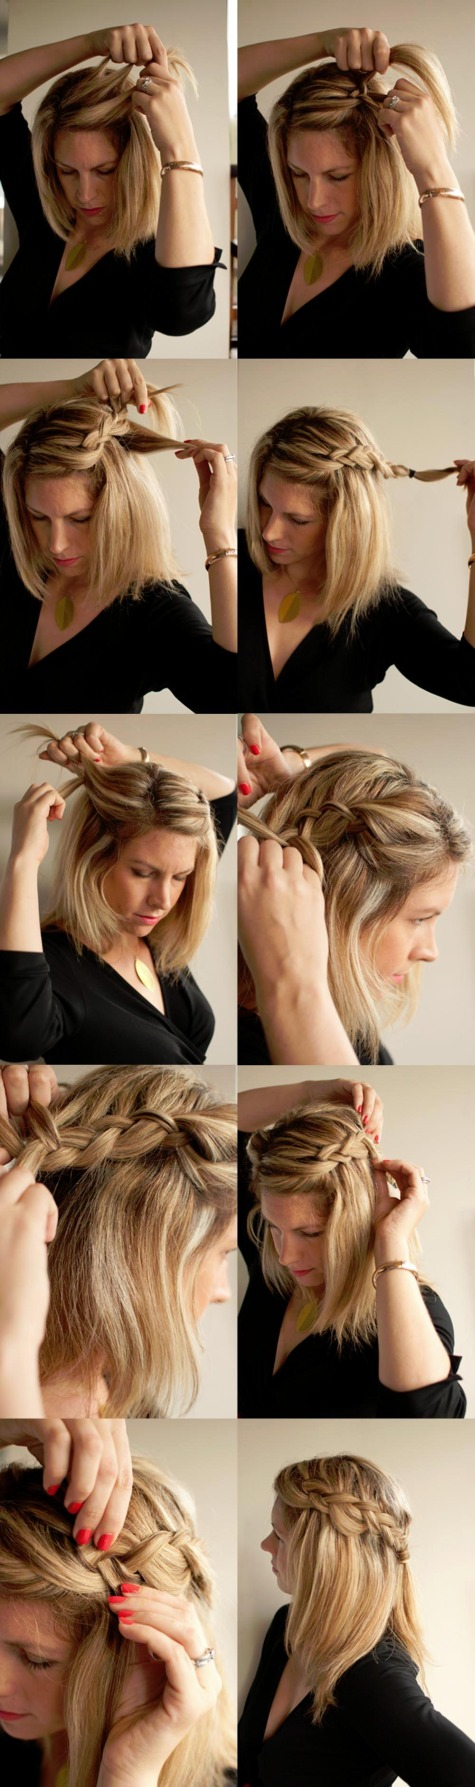 22 Amazing Braid Hairstyle Tutorials